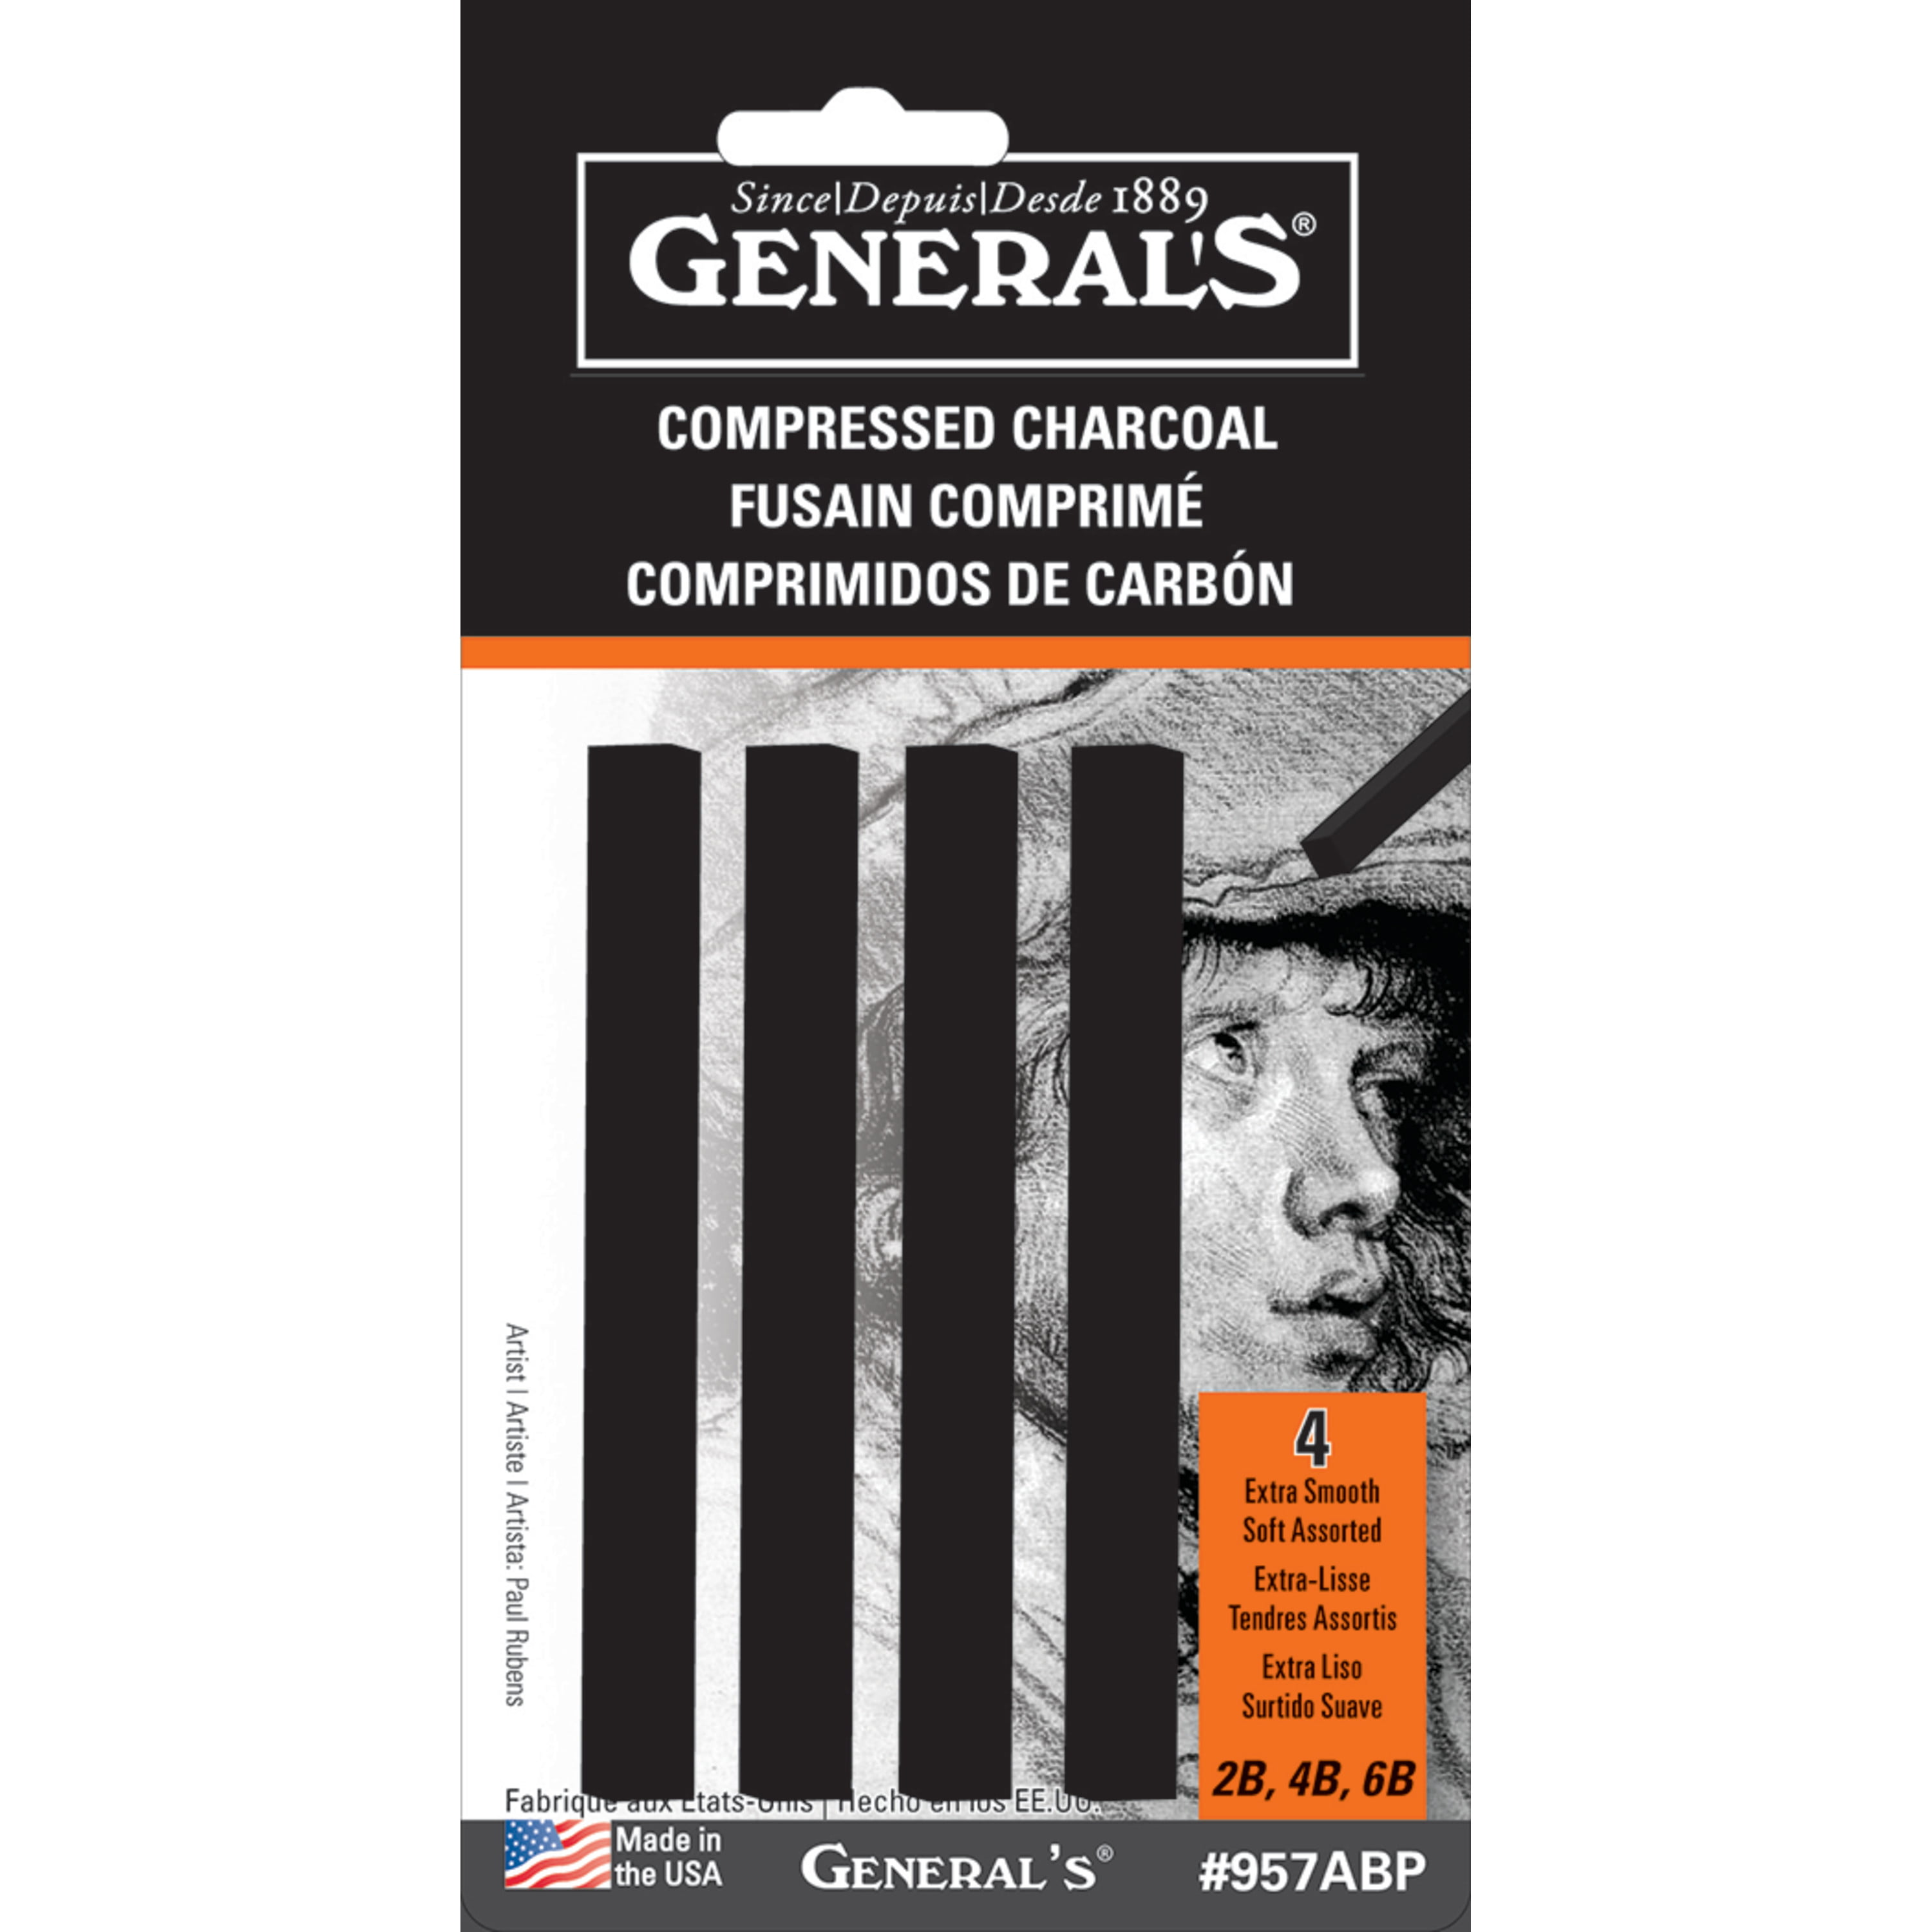 General White Compressed Charcoal Stcks 12//Bx